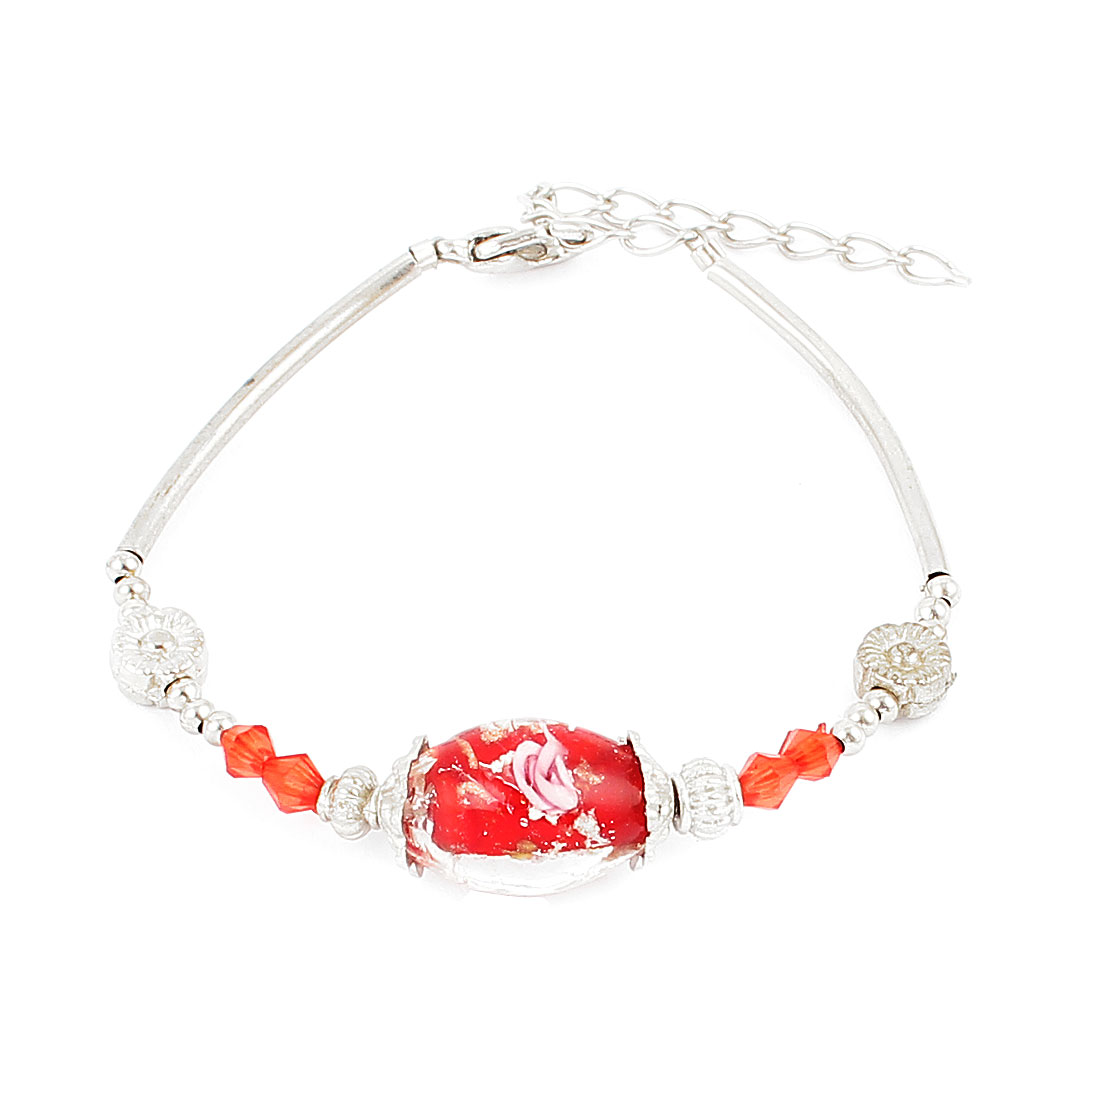 Lady Lobster Hook Oval Bead Accent Wrist Chain Bracelet Red